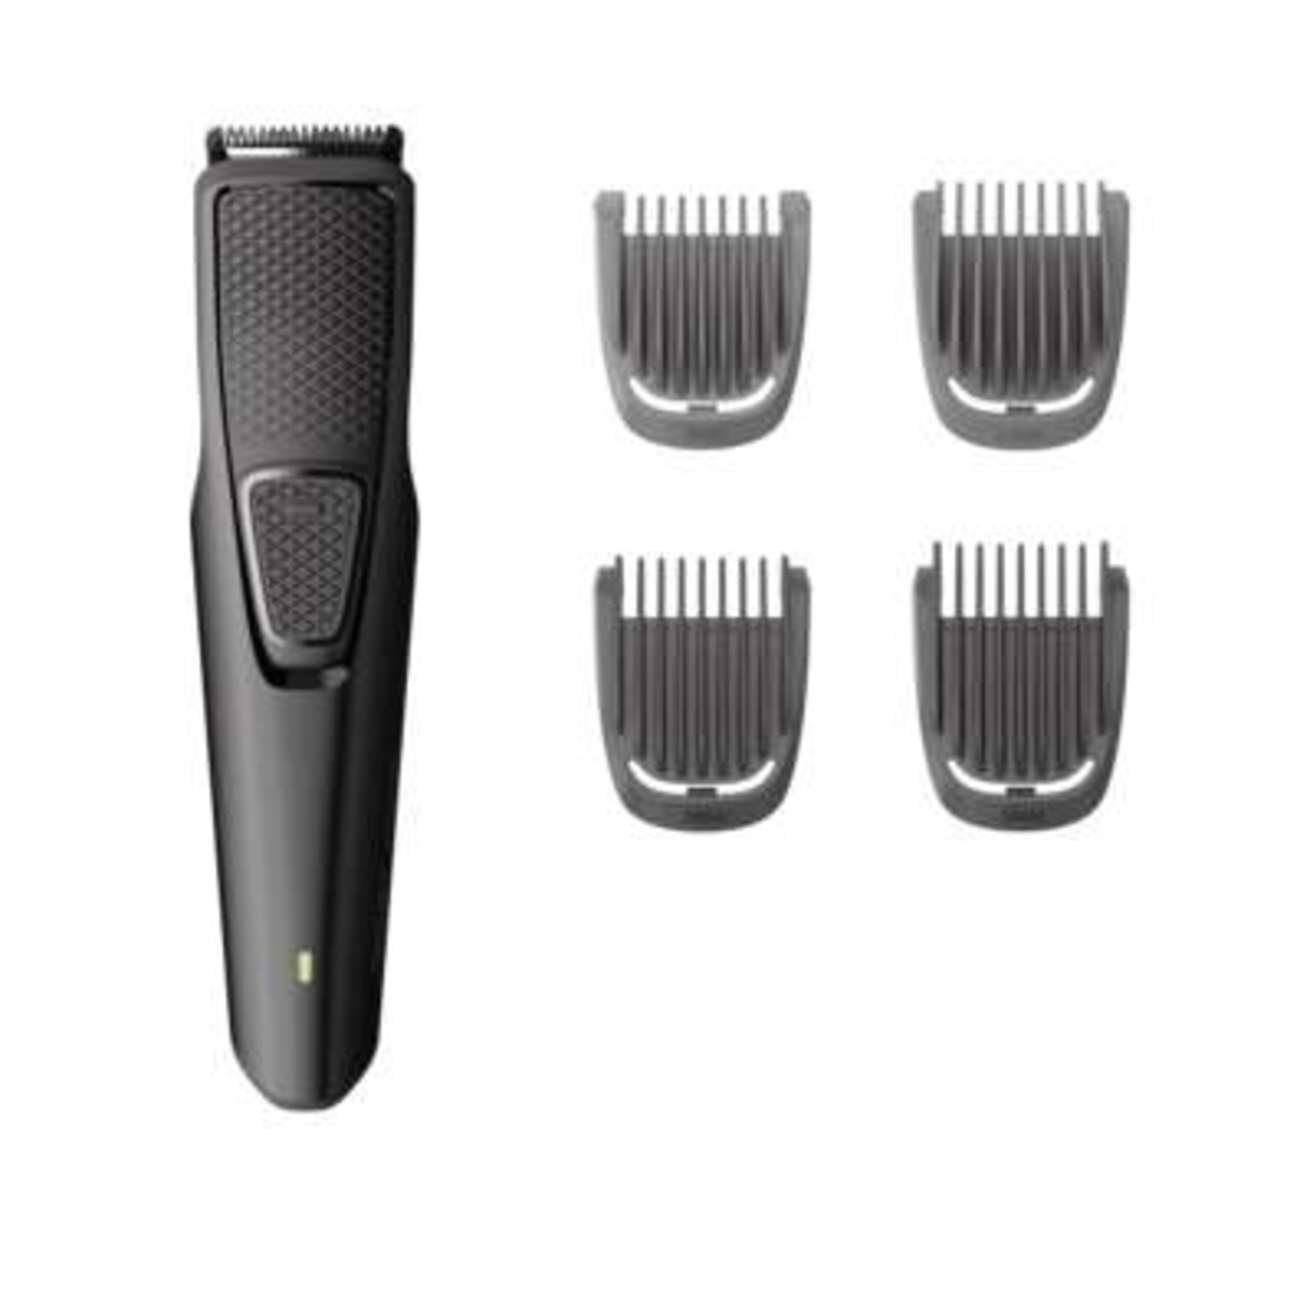 Philips Norelco Beard Trimmer BT1217/70 - cordless grooming, USB rechargable, beard, stubble, and mustache